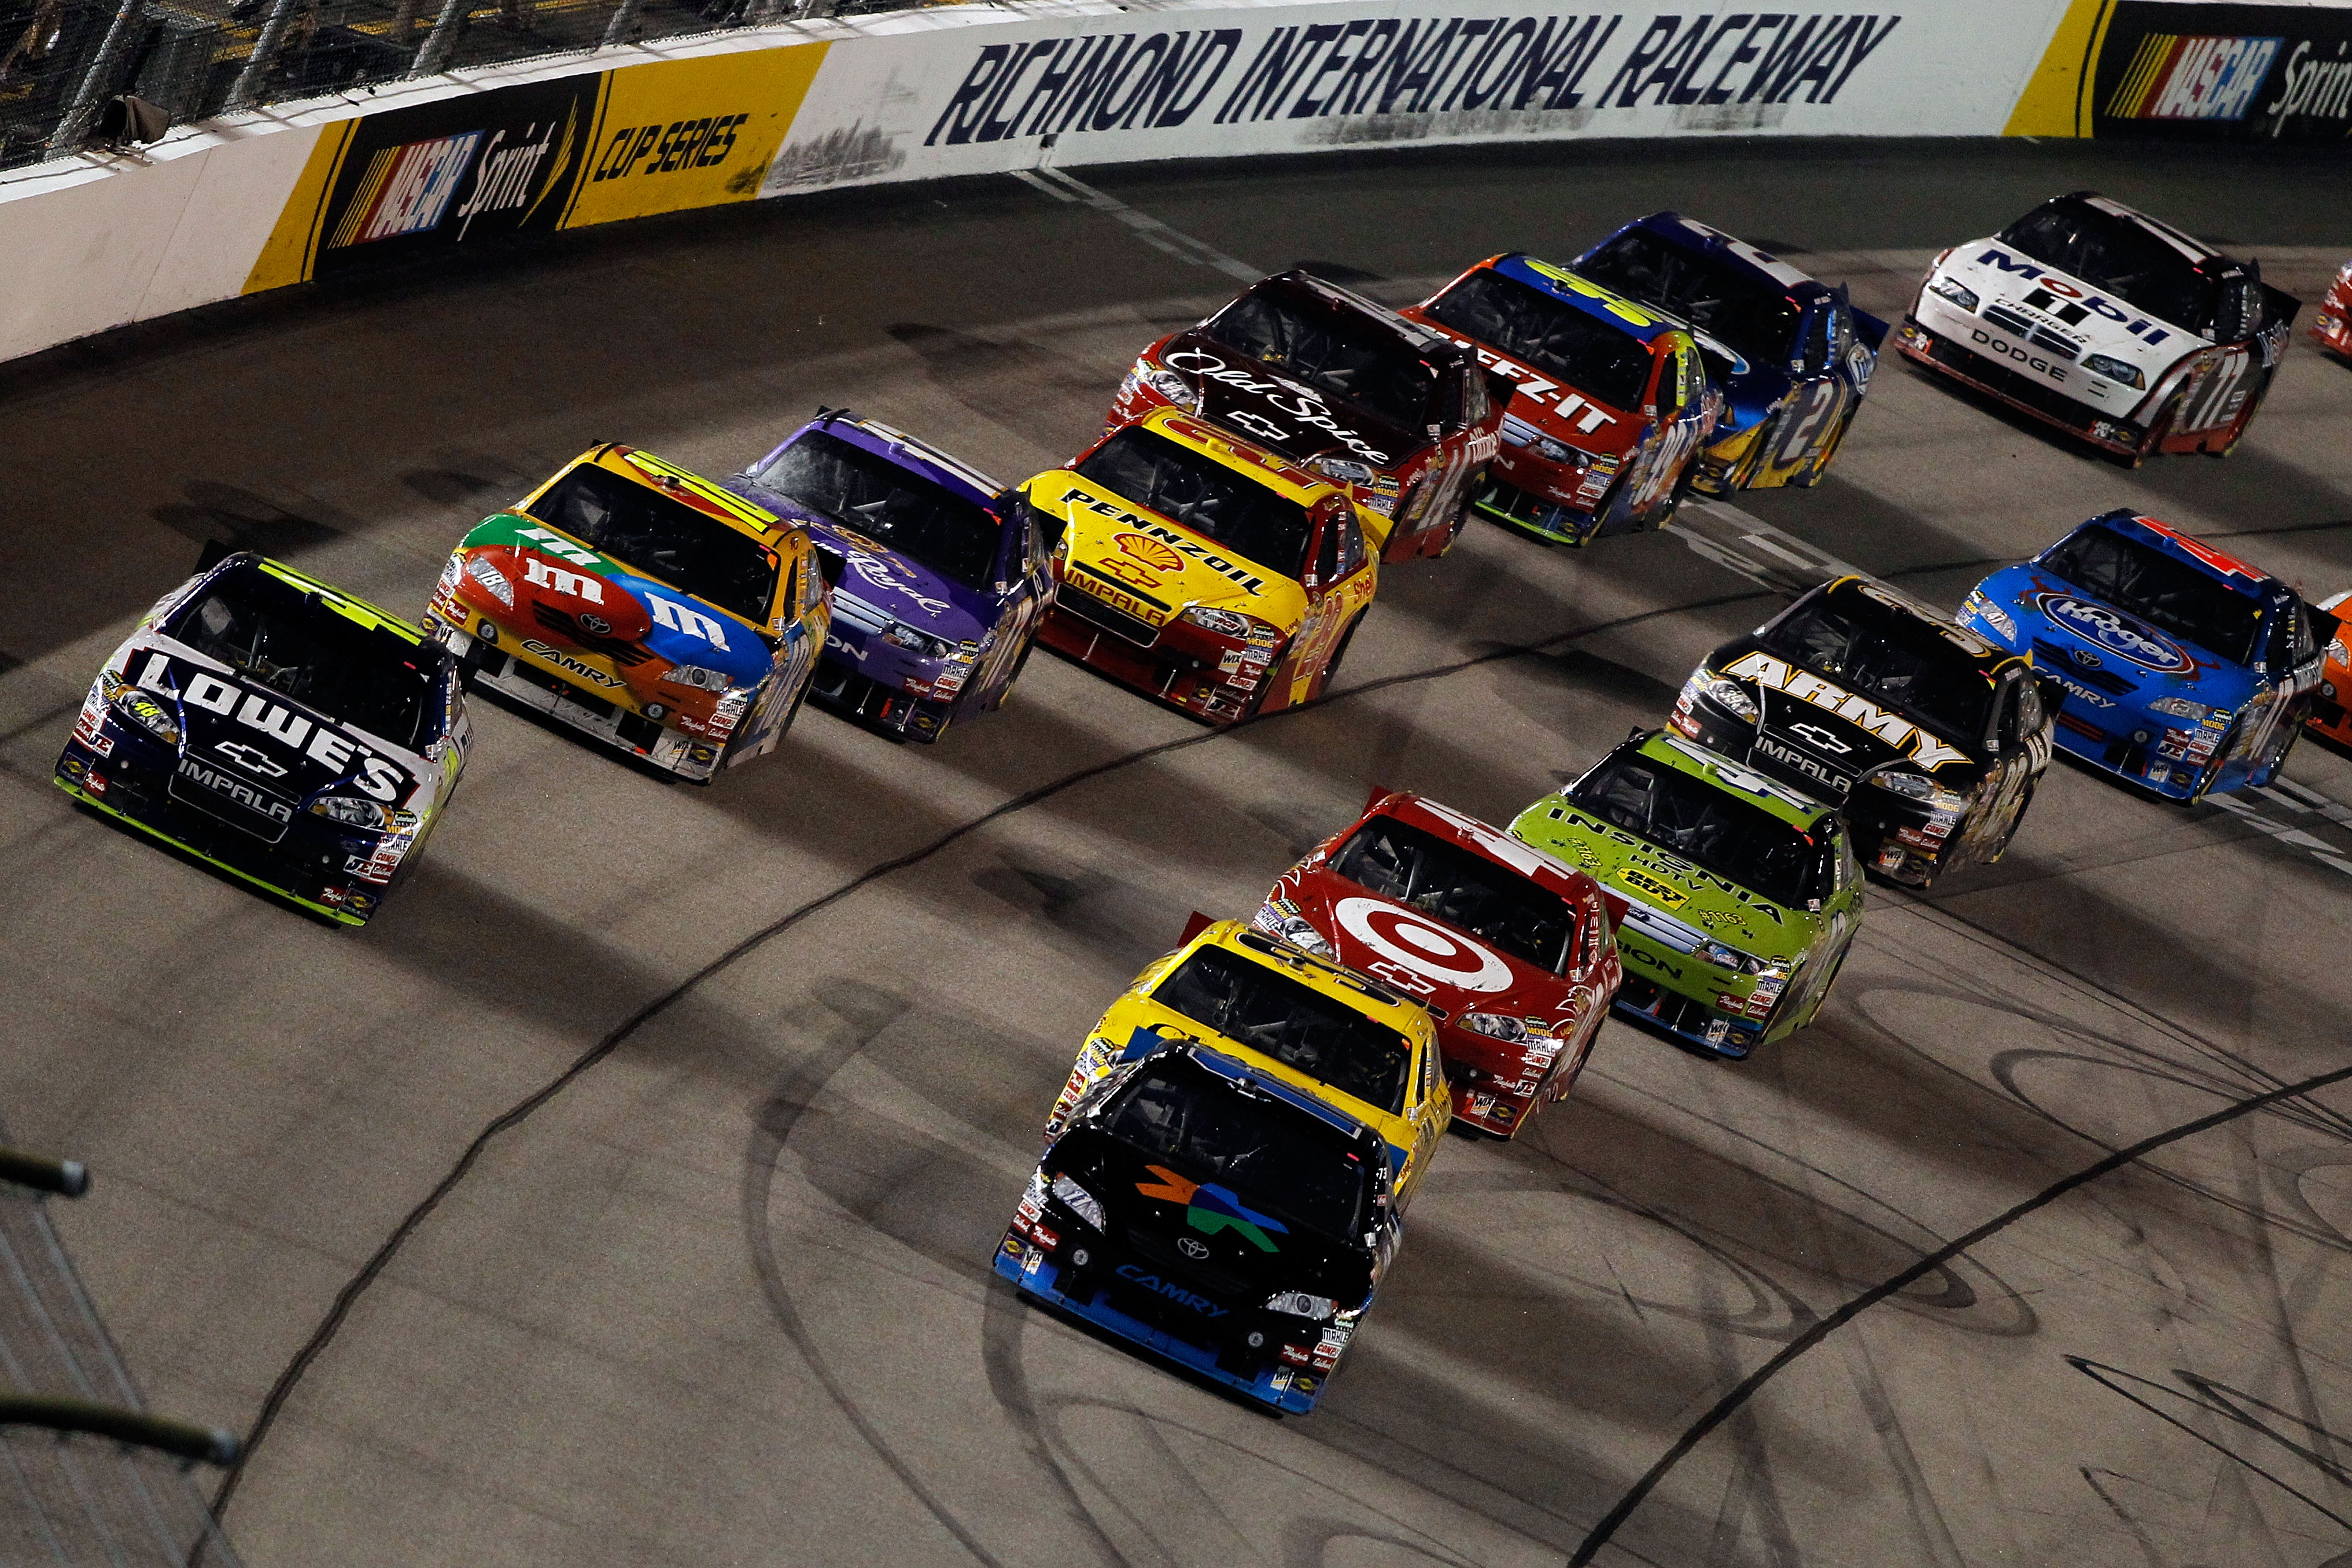 RICHMOND, VA - SEPTEMBER 11:  Jimmie Johnson, driver of the #48 Lowe's Chevrolet,  and Denny Hamlin, driver of the #11 FedEx Office Toyota, lead the field to a restart in the NASCAR Sprint Cup Series Air Guard 400 at Richmond International Raceway on Sept